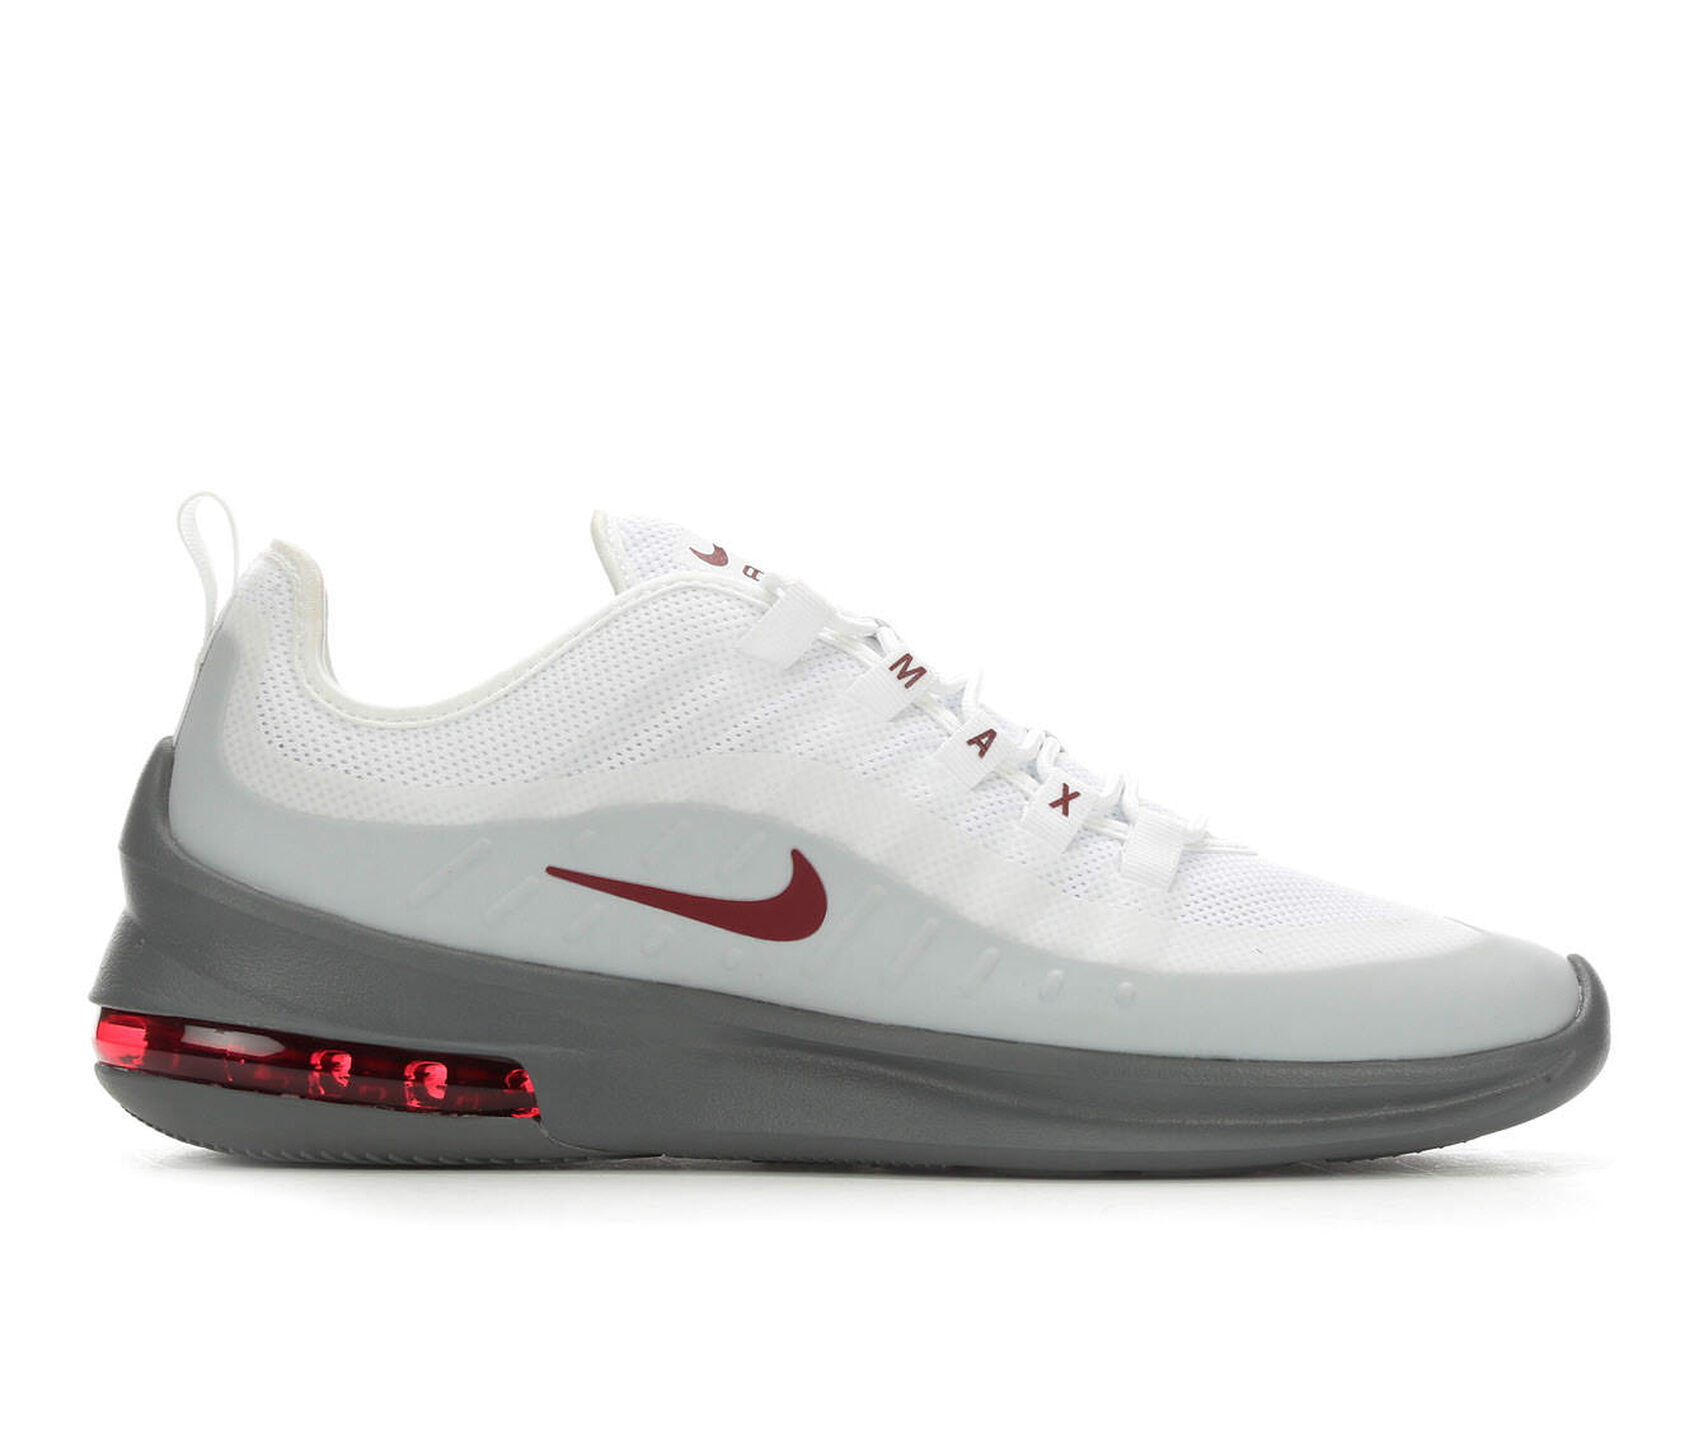 official photos dc4ee ba226 ... Nike Air Max Axis Running Shoes. Previous